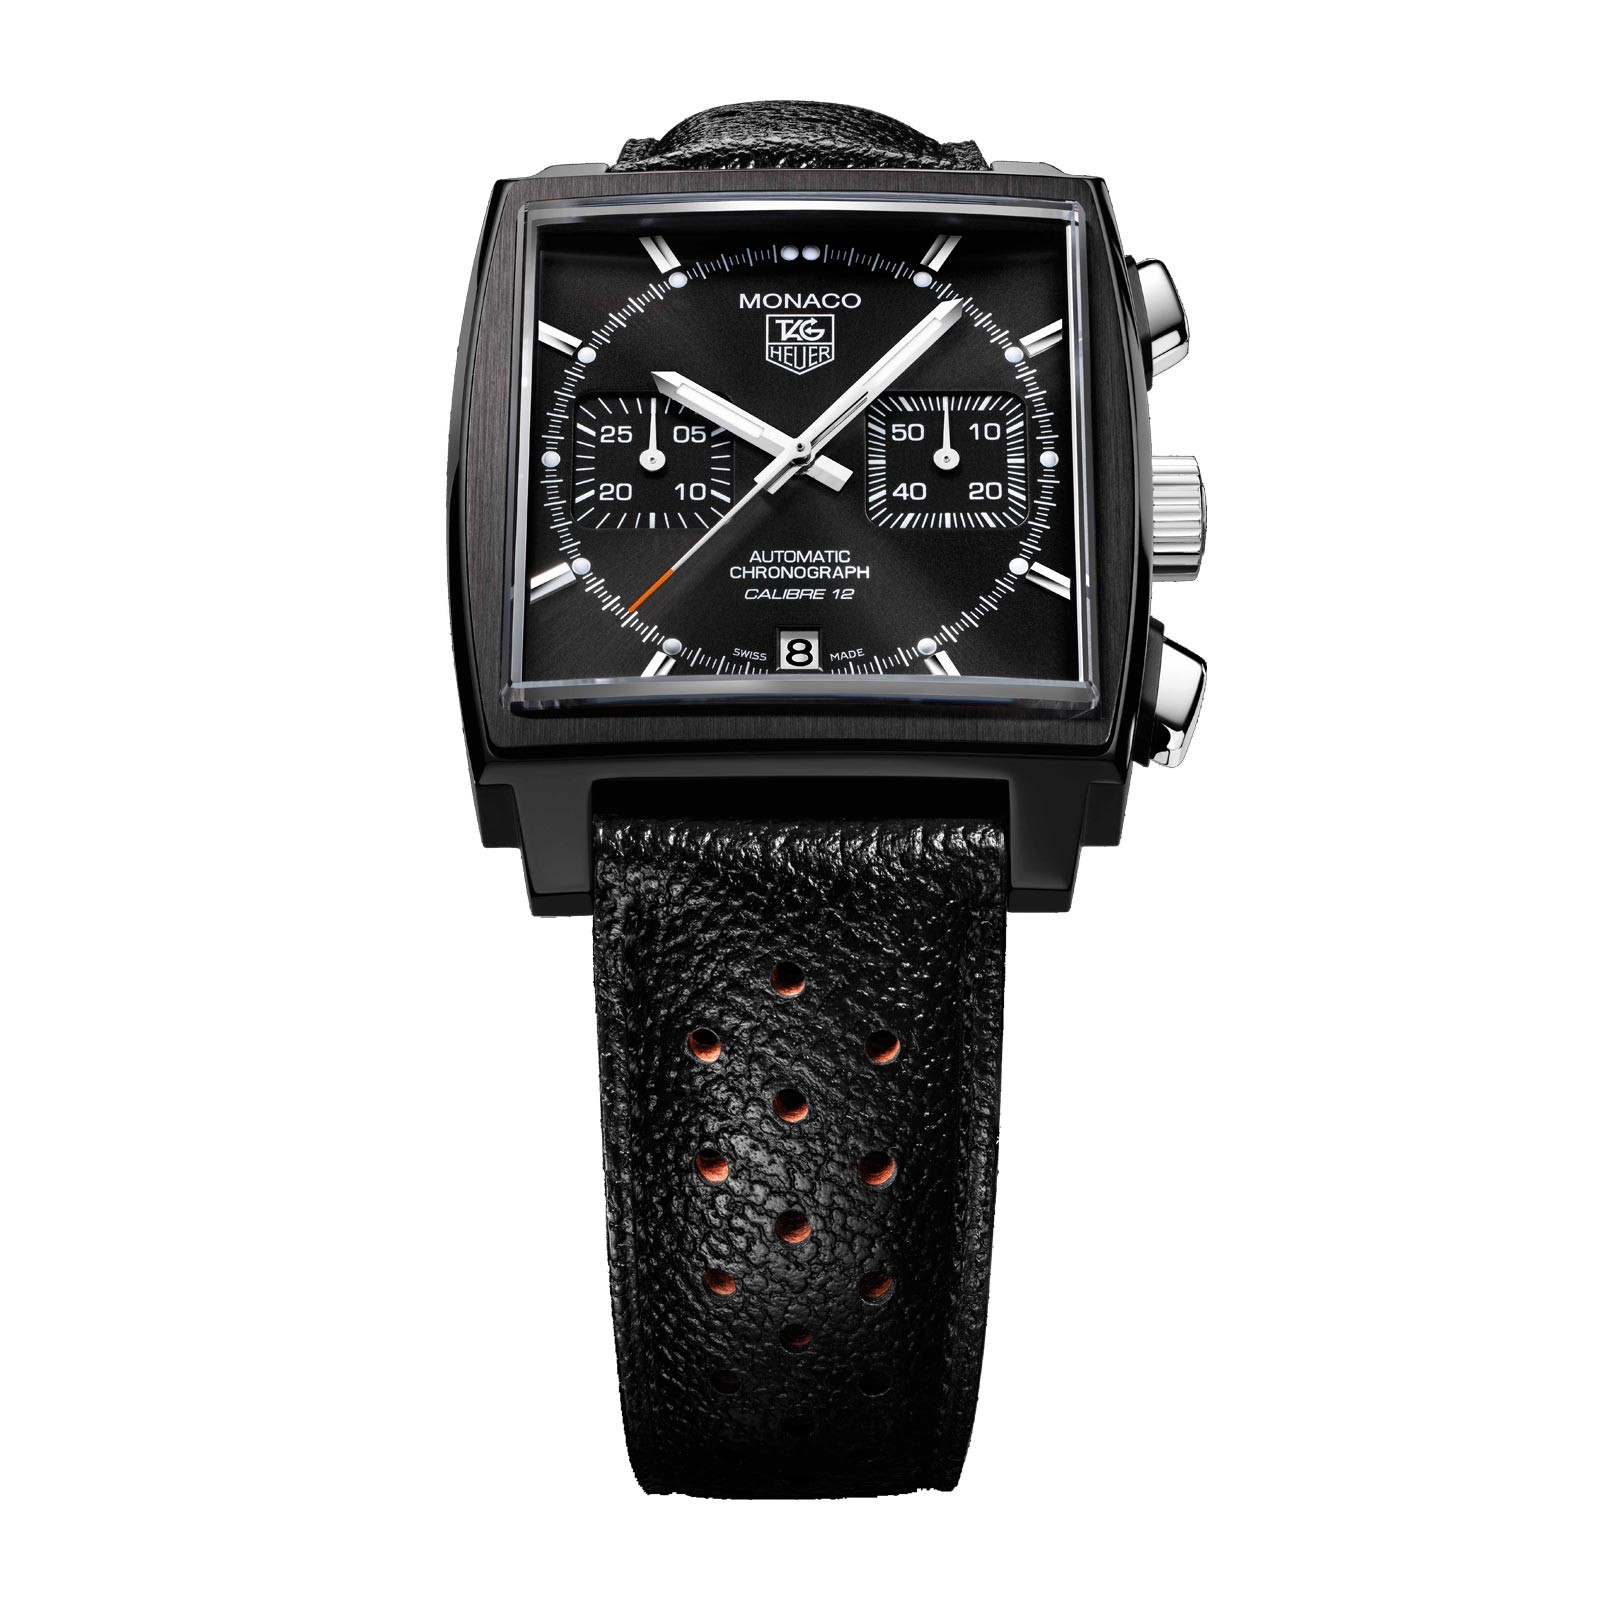 tag heuer monaco acm cronografo automatic caliber 12. Black Bedroom Furniture Sets. Home Design Ideas